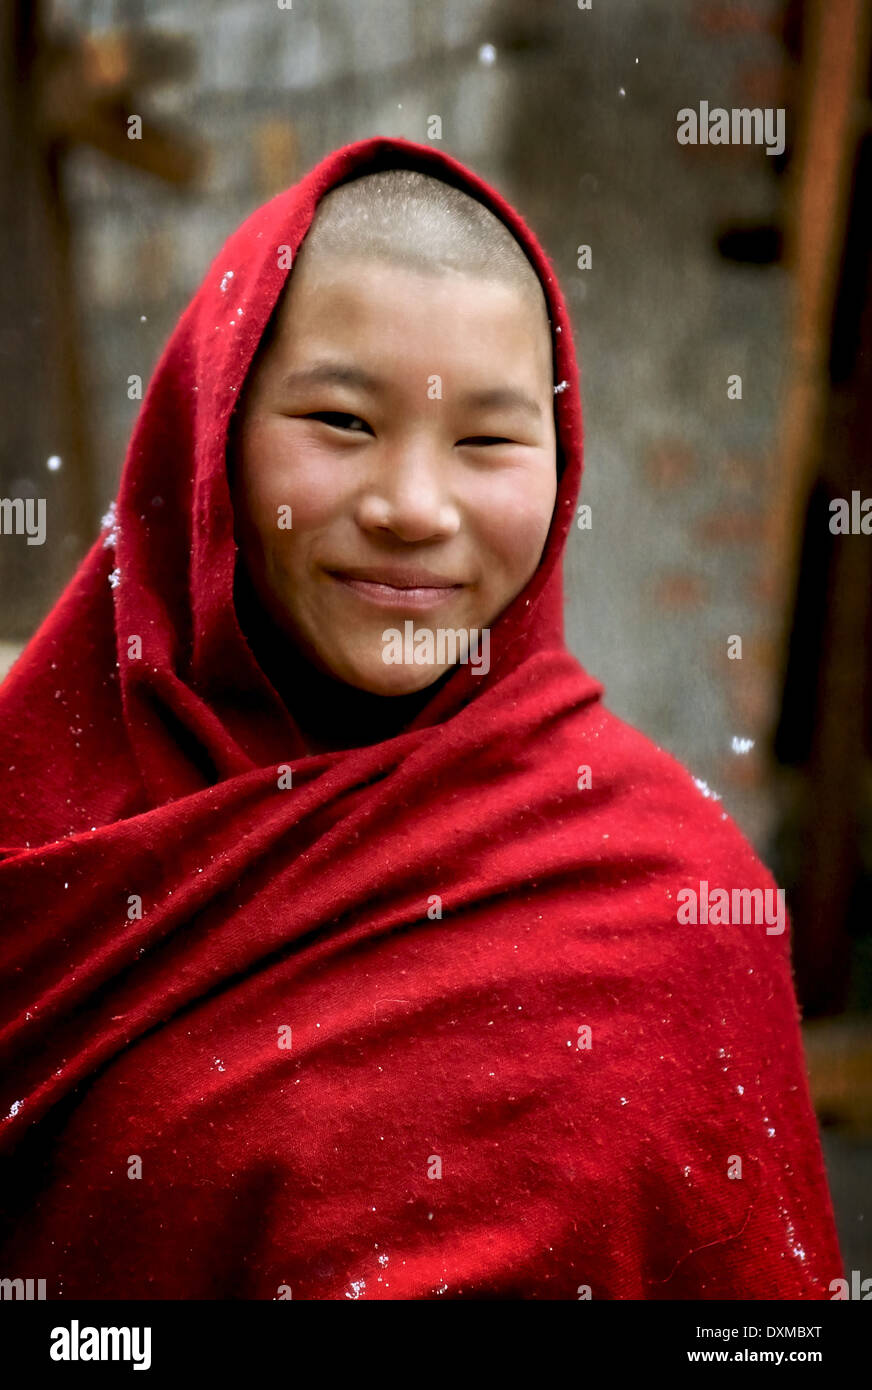 Buddhist nun in nunnnery in Thimpu, Bhutan. Digitally Manipulated Image. Stylised by sharpening and enhancing color. - Stock Image